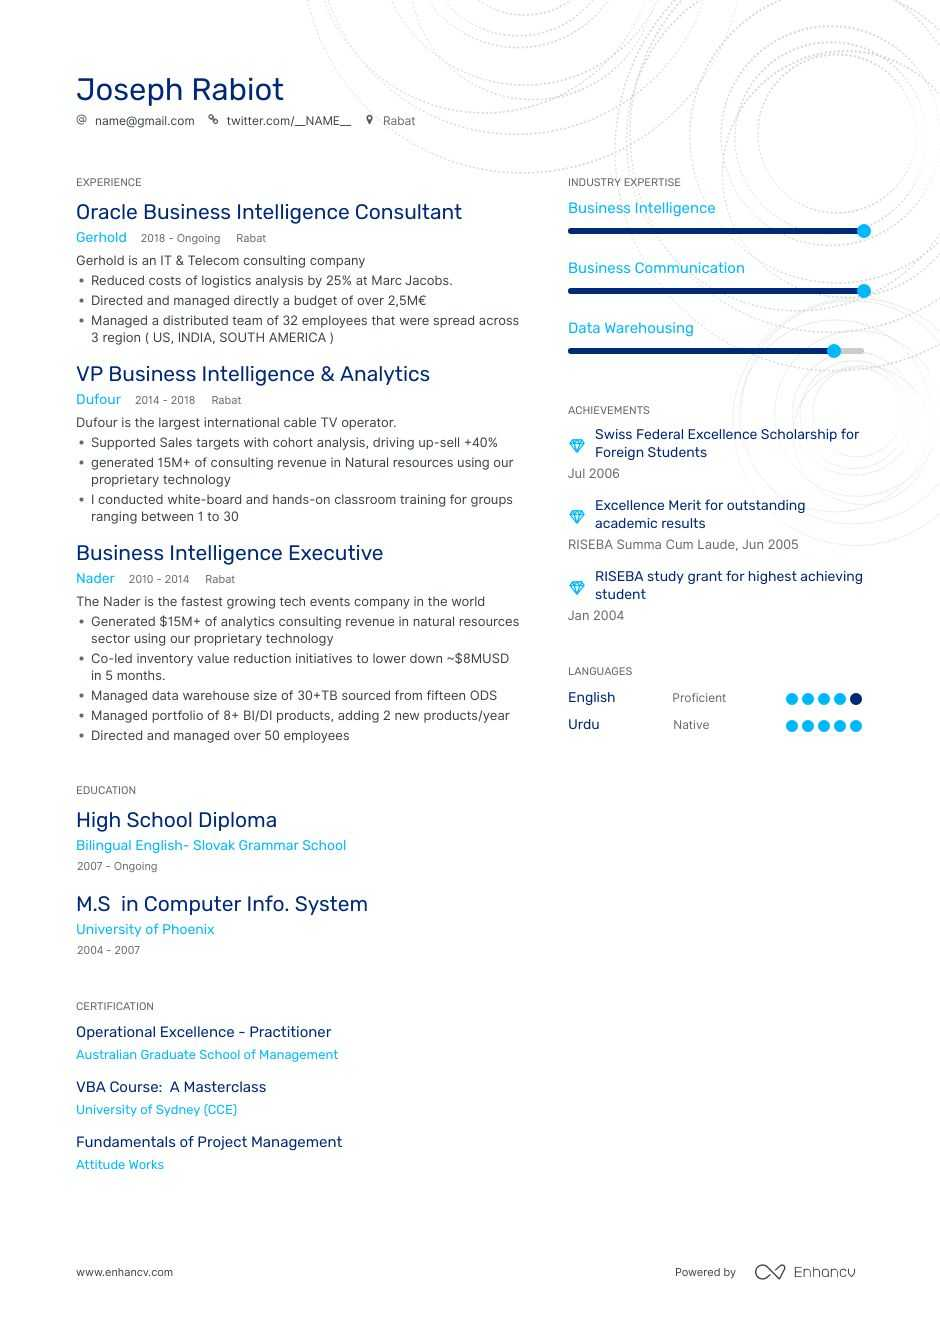 business intelligence resume examples expert advice enhancv keywords middle initial on Resume Business Intelligence Resume Keywords